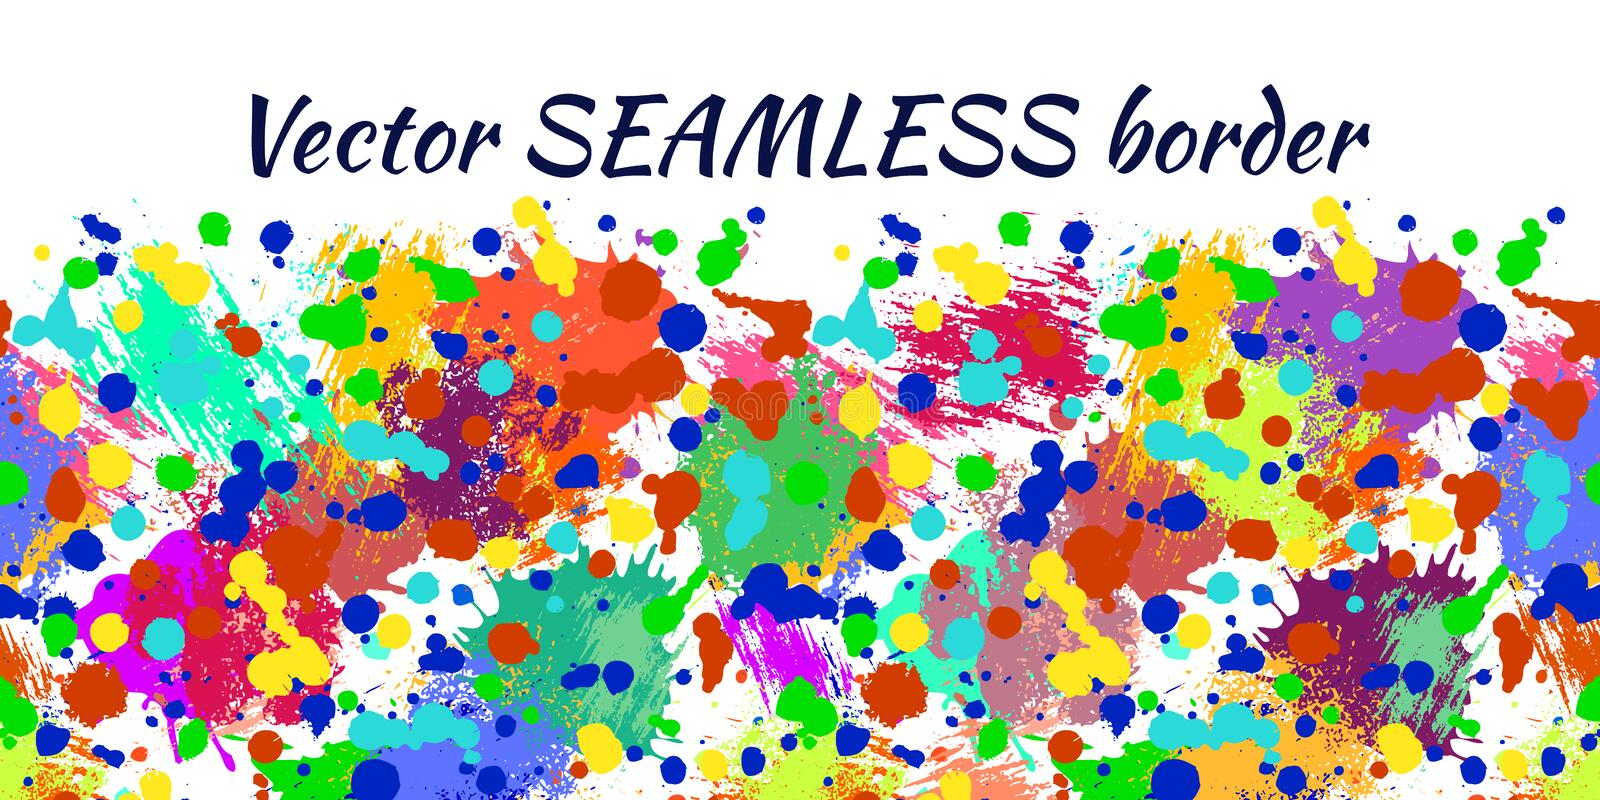 Vector seamless pattern with watercolor ink blots, splash and brush strokes. Horizontal banner, seamless border. Colorful creative artistic background. Series royalty free illustration